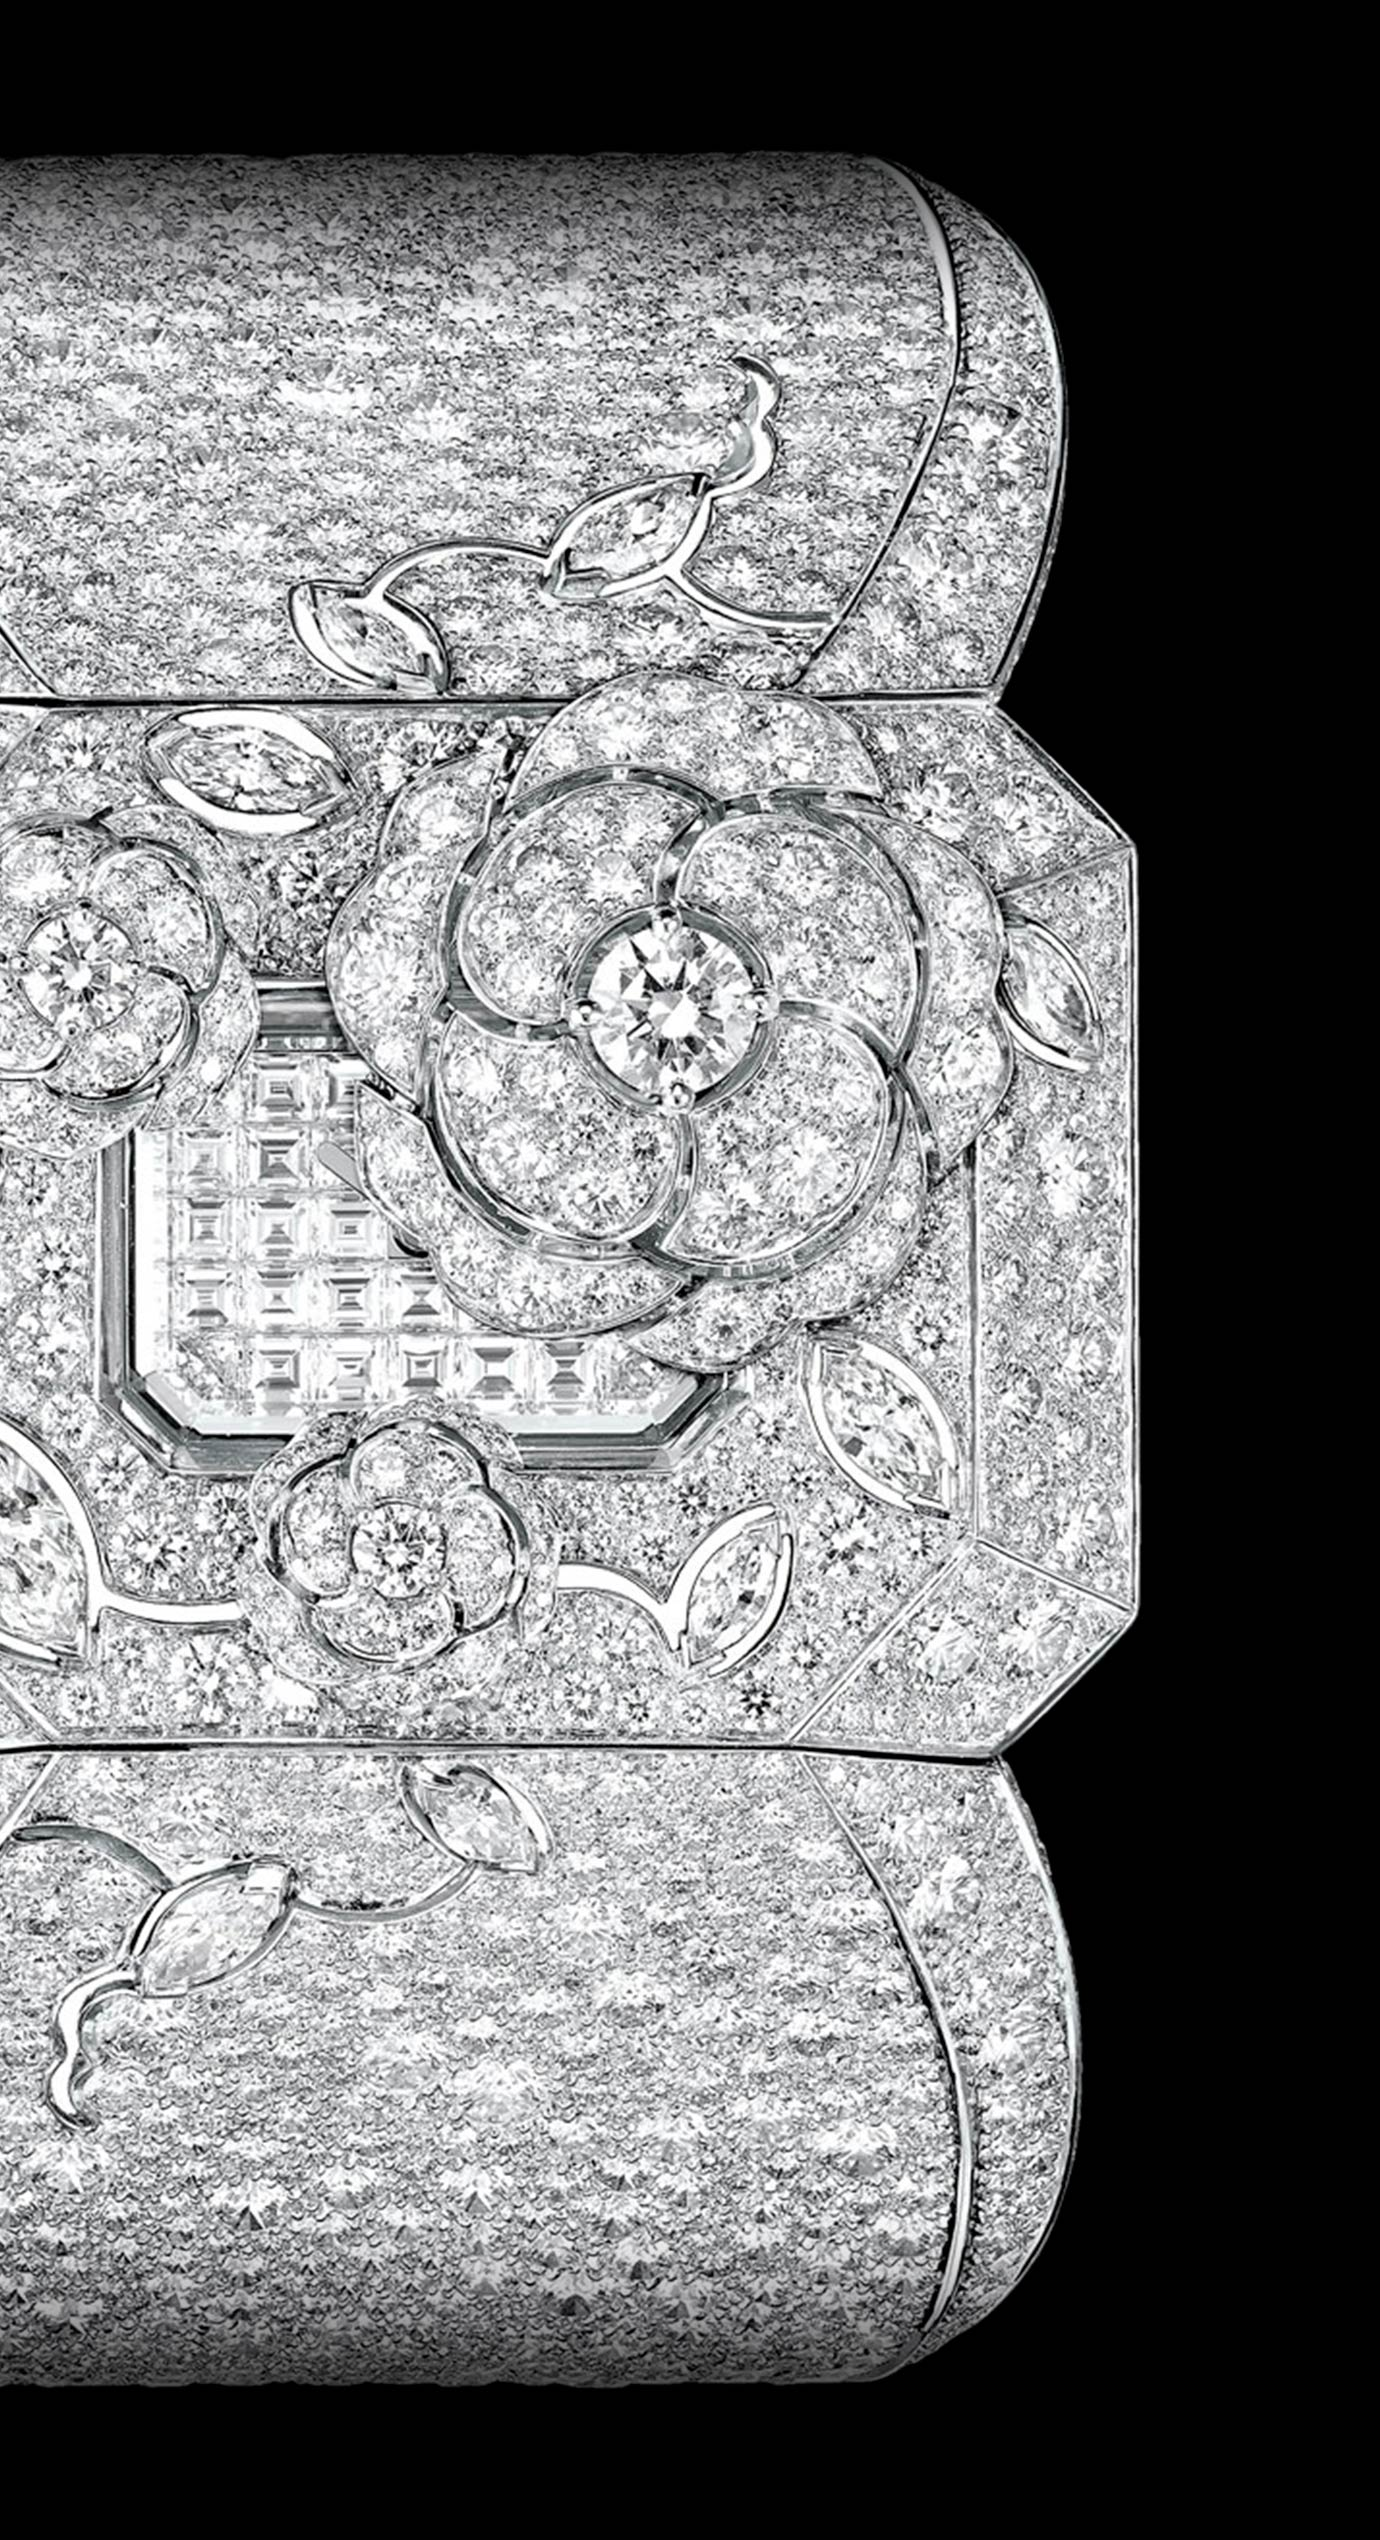 """""""Médaillon"""" watch. The back of this medallion composed of engraved rock crystal, pearls and diamonds (including one 5.32-carat Fancy Light Yellow pear-cut diamond) conceals a diamond-paved watch dial. The medallion hangs elegantly from an 18K white gold sautoir set with 587 diamonds. - Back"""